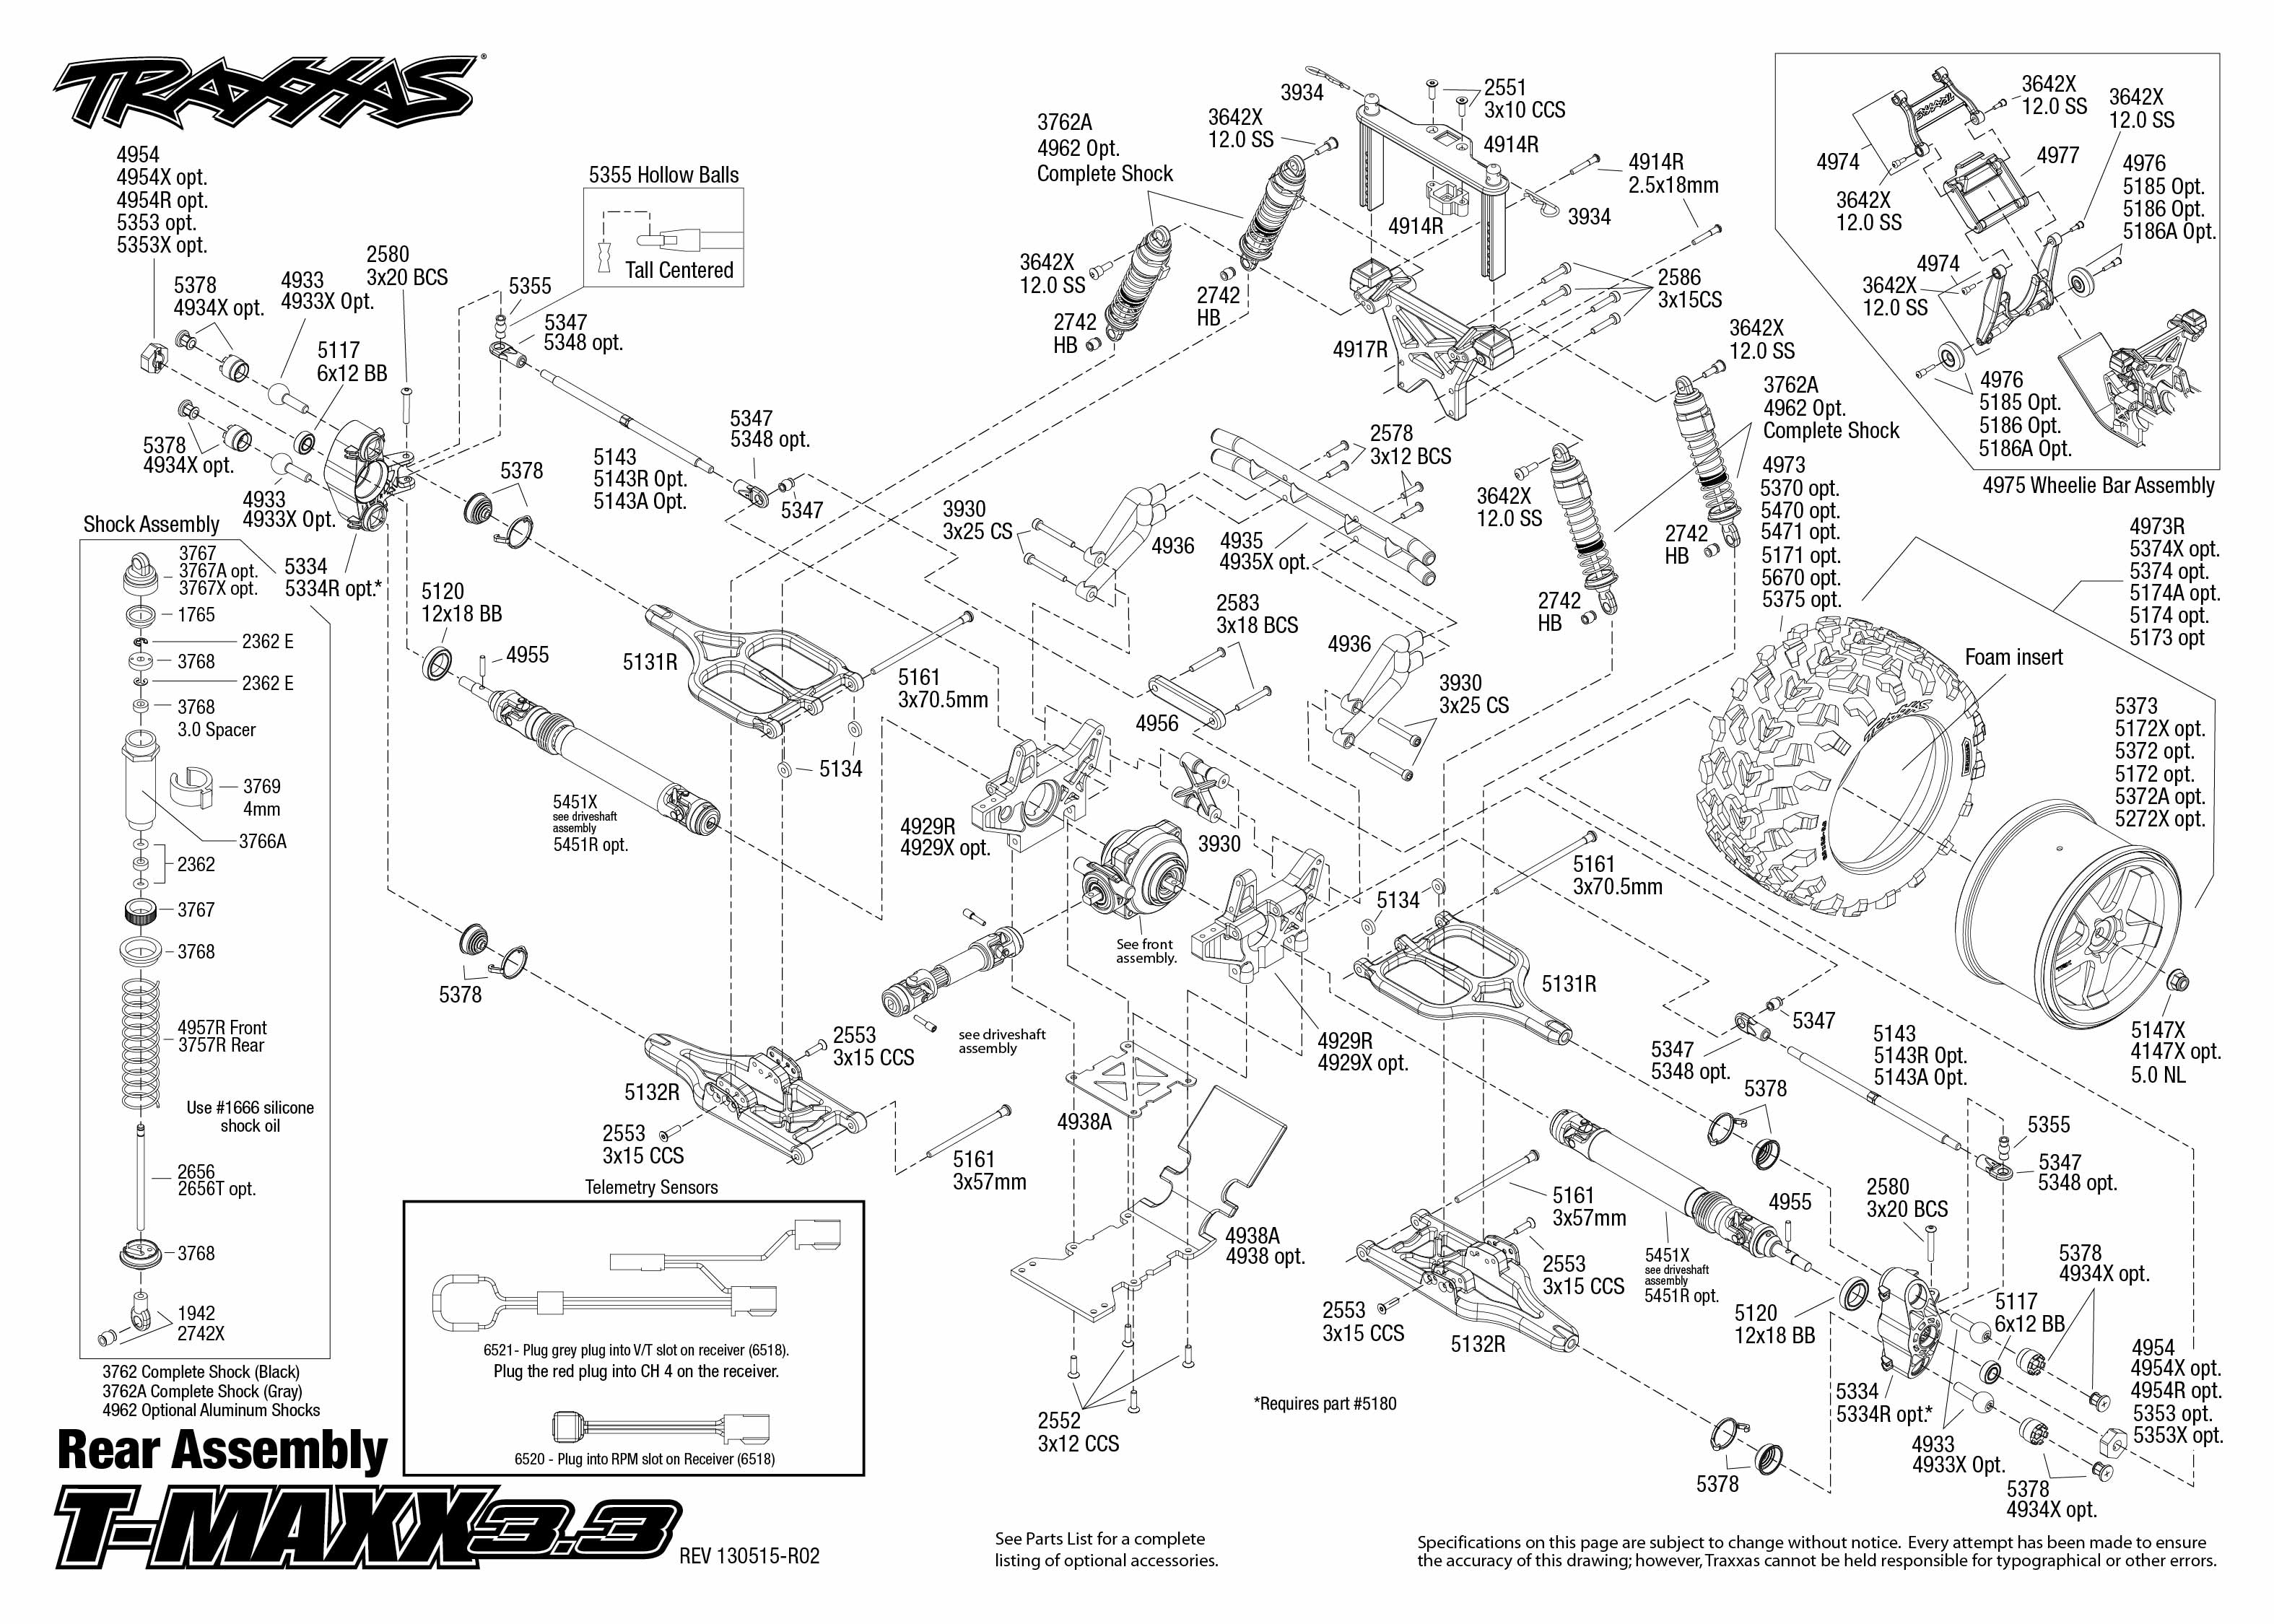 traxxas t maxx 2 5 transmission diagram satellite dish connection 33 engine exploded view 2018 dodge reviews